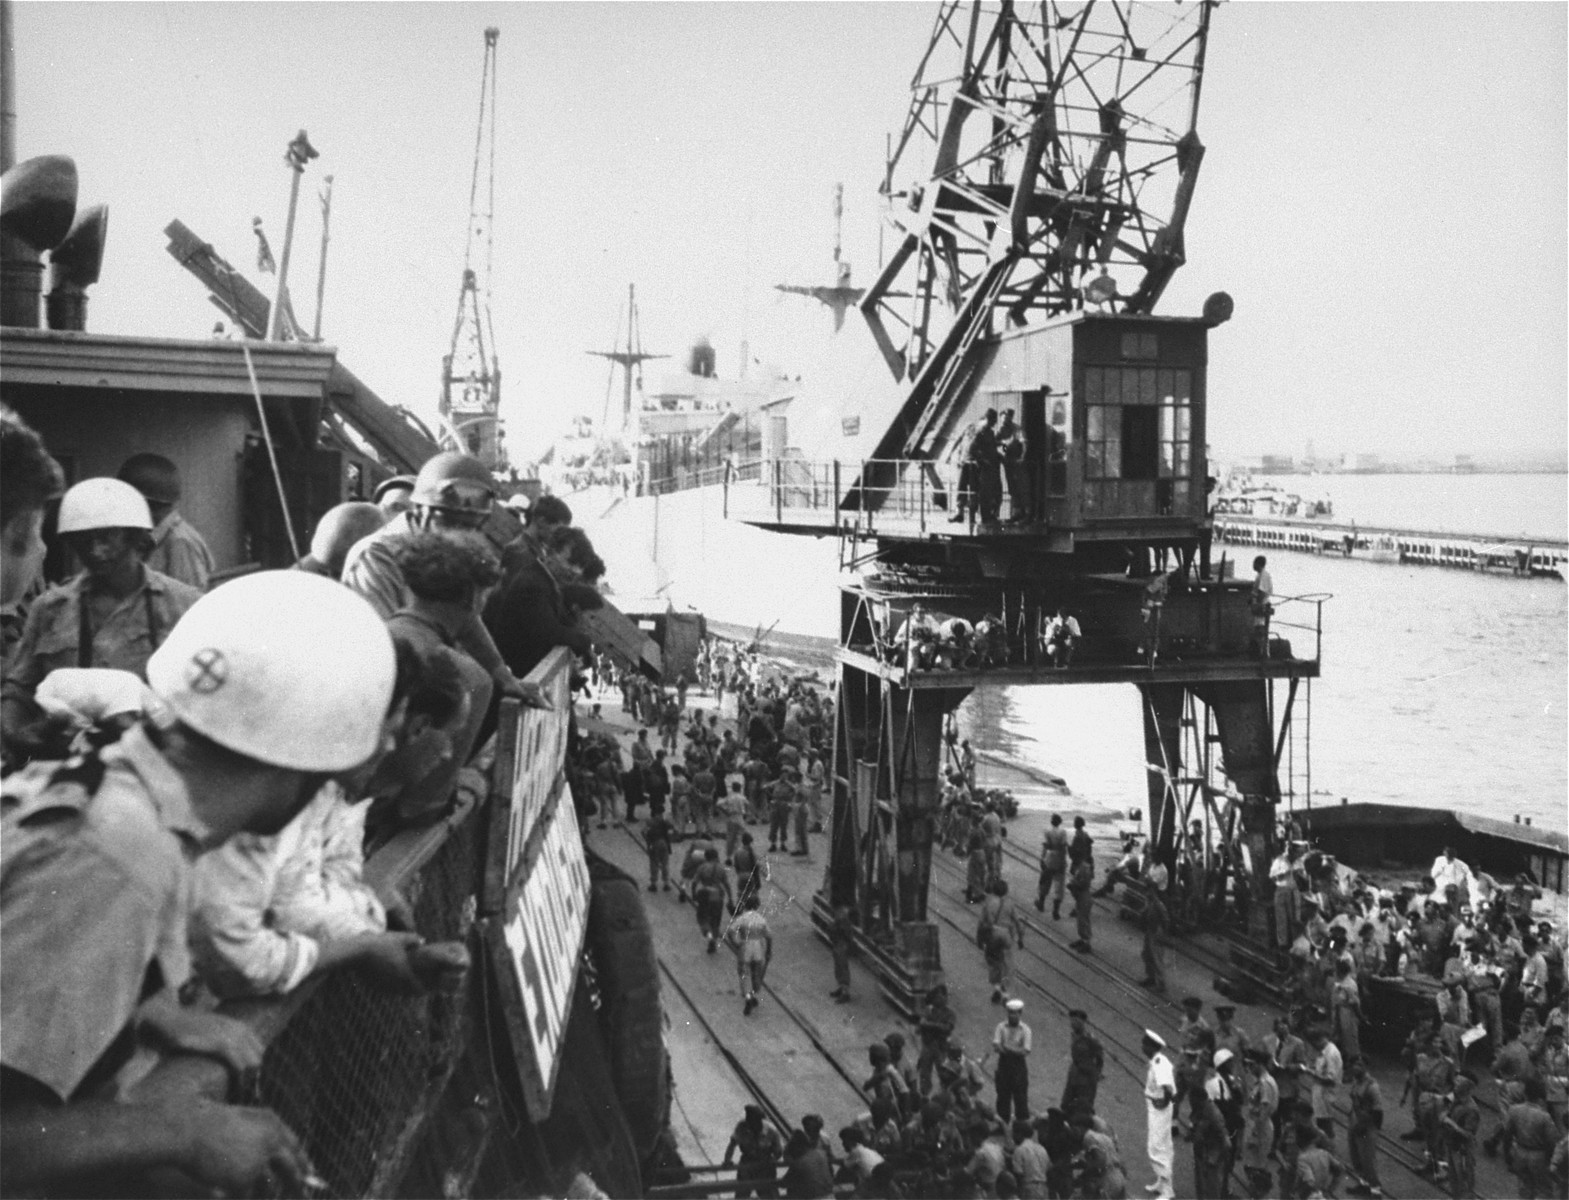 British soldiers transfer the refugees from the Exodus 1947 to the deportation ships.